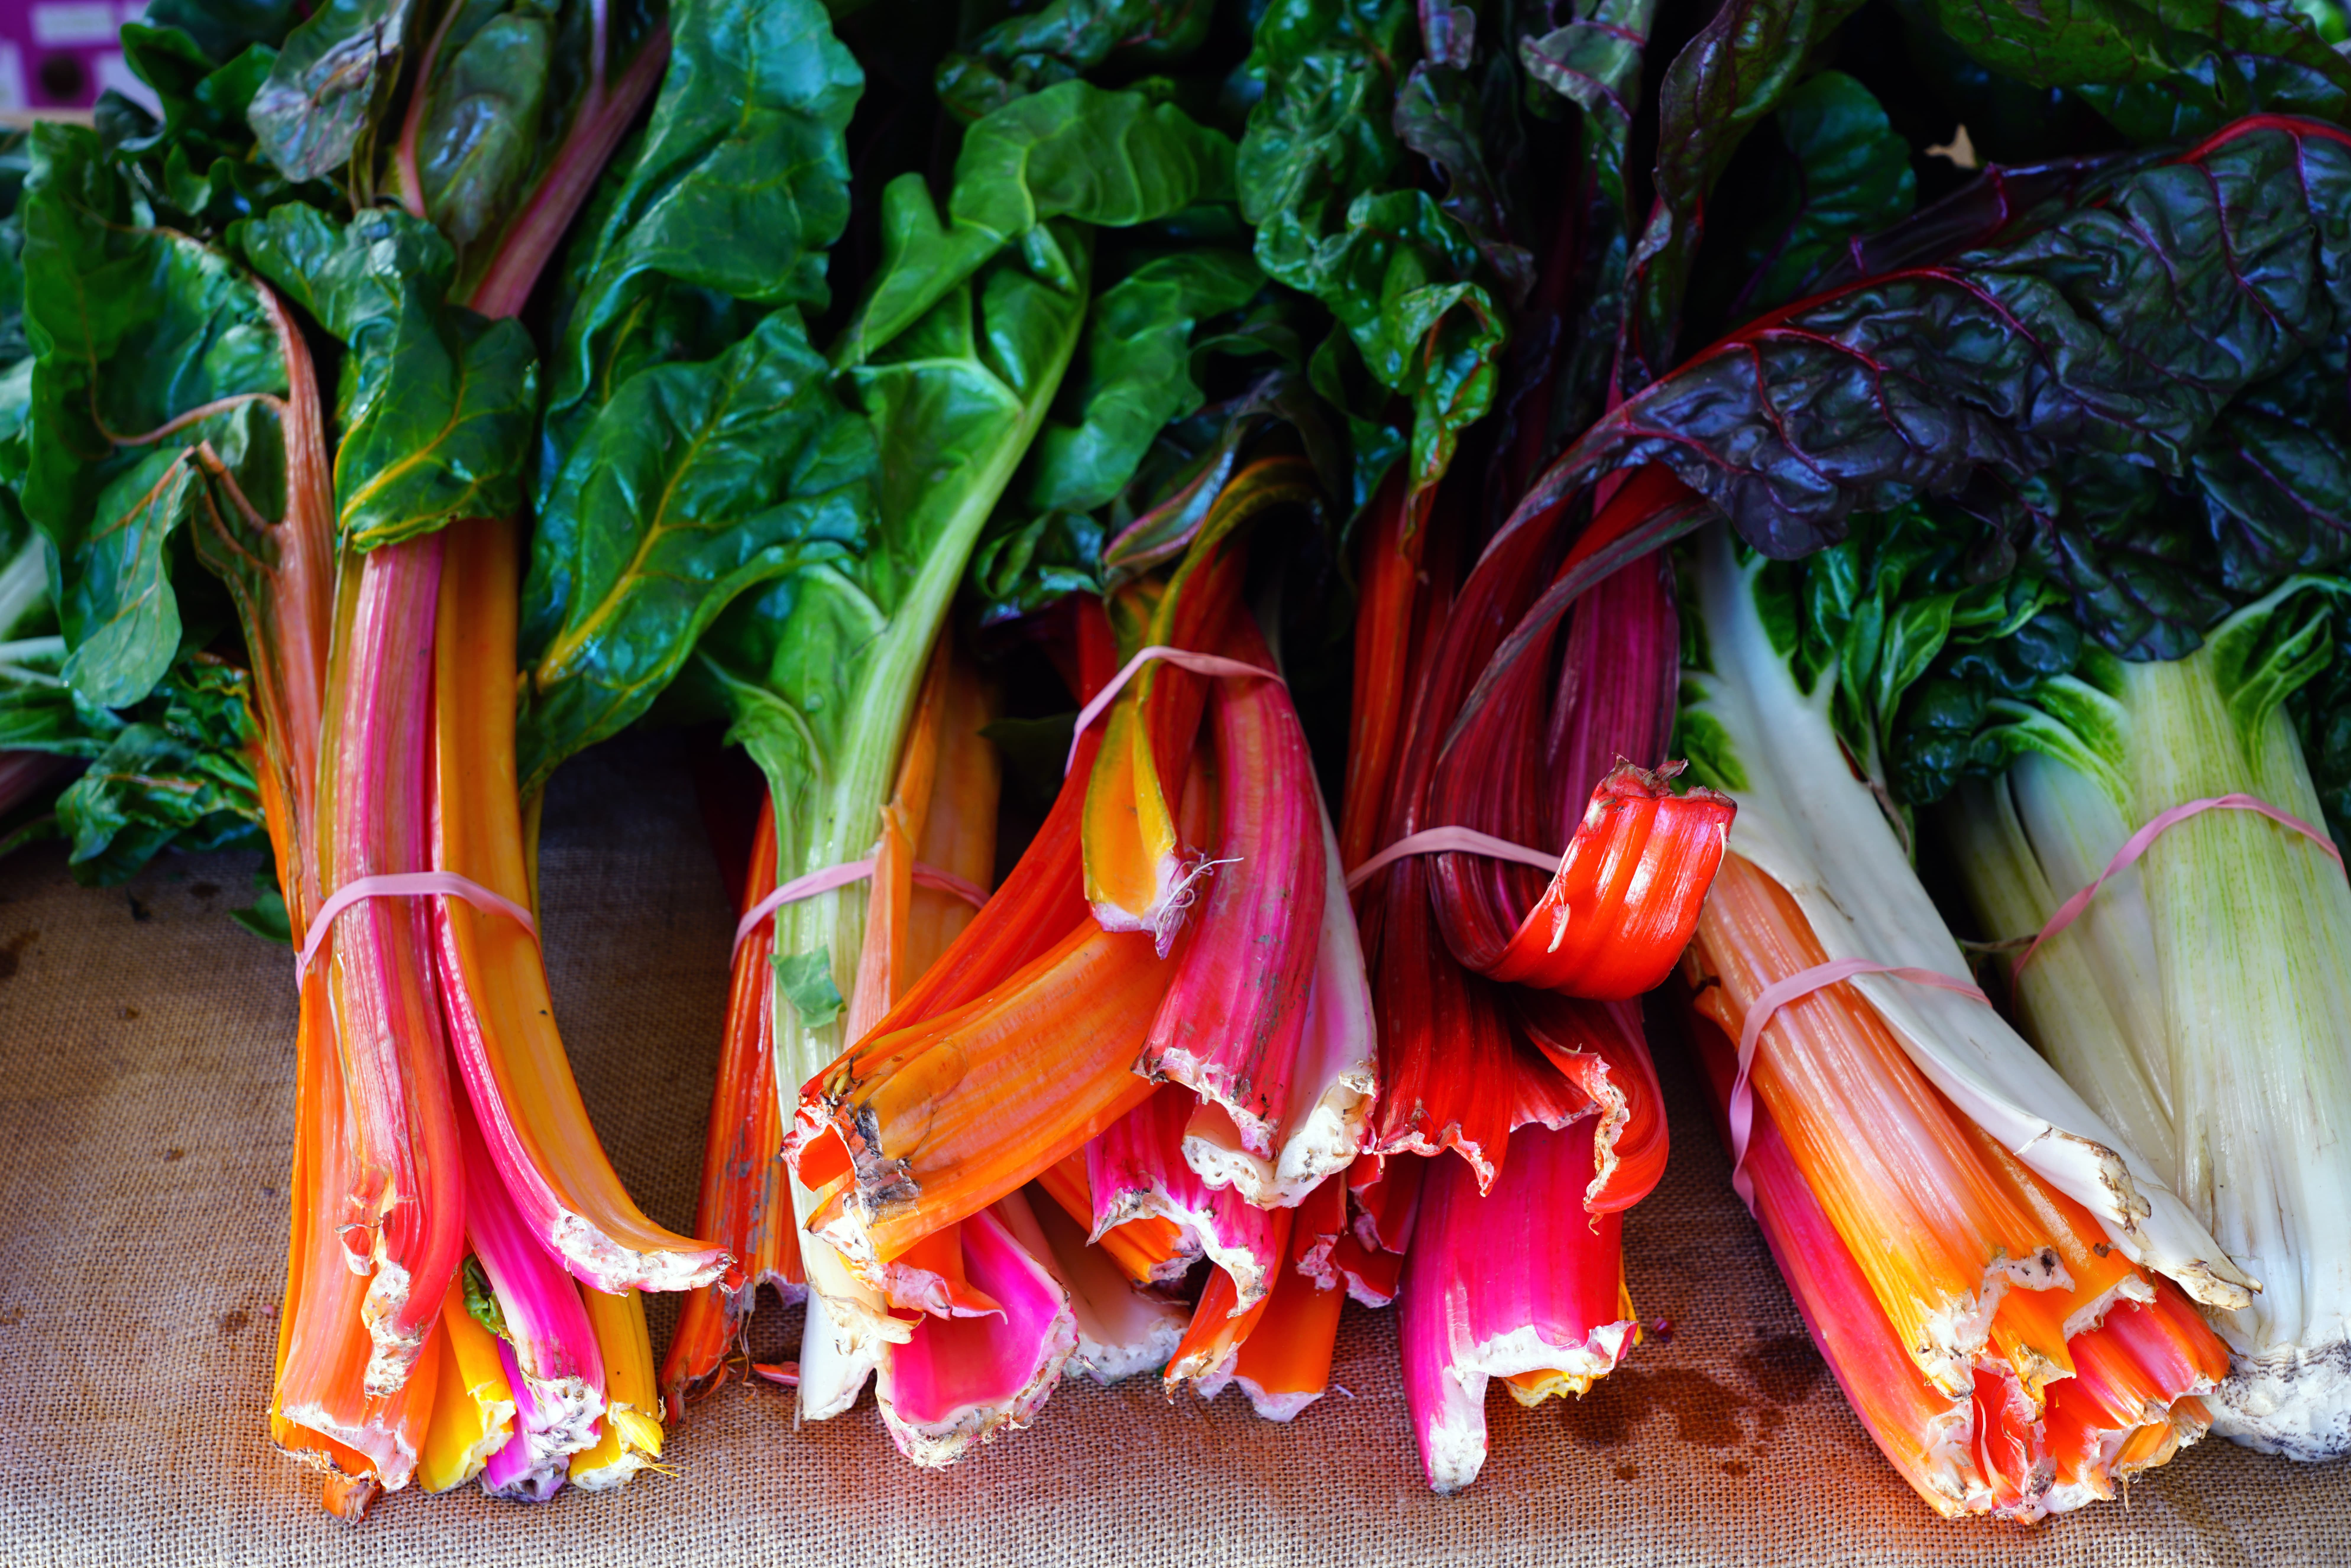 Bunches of rainbow Swiss chard with bright red  and orange stalks and green leaves for sale at a farmers market